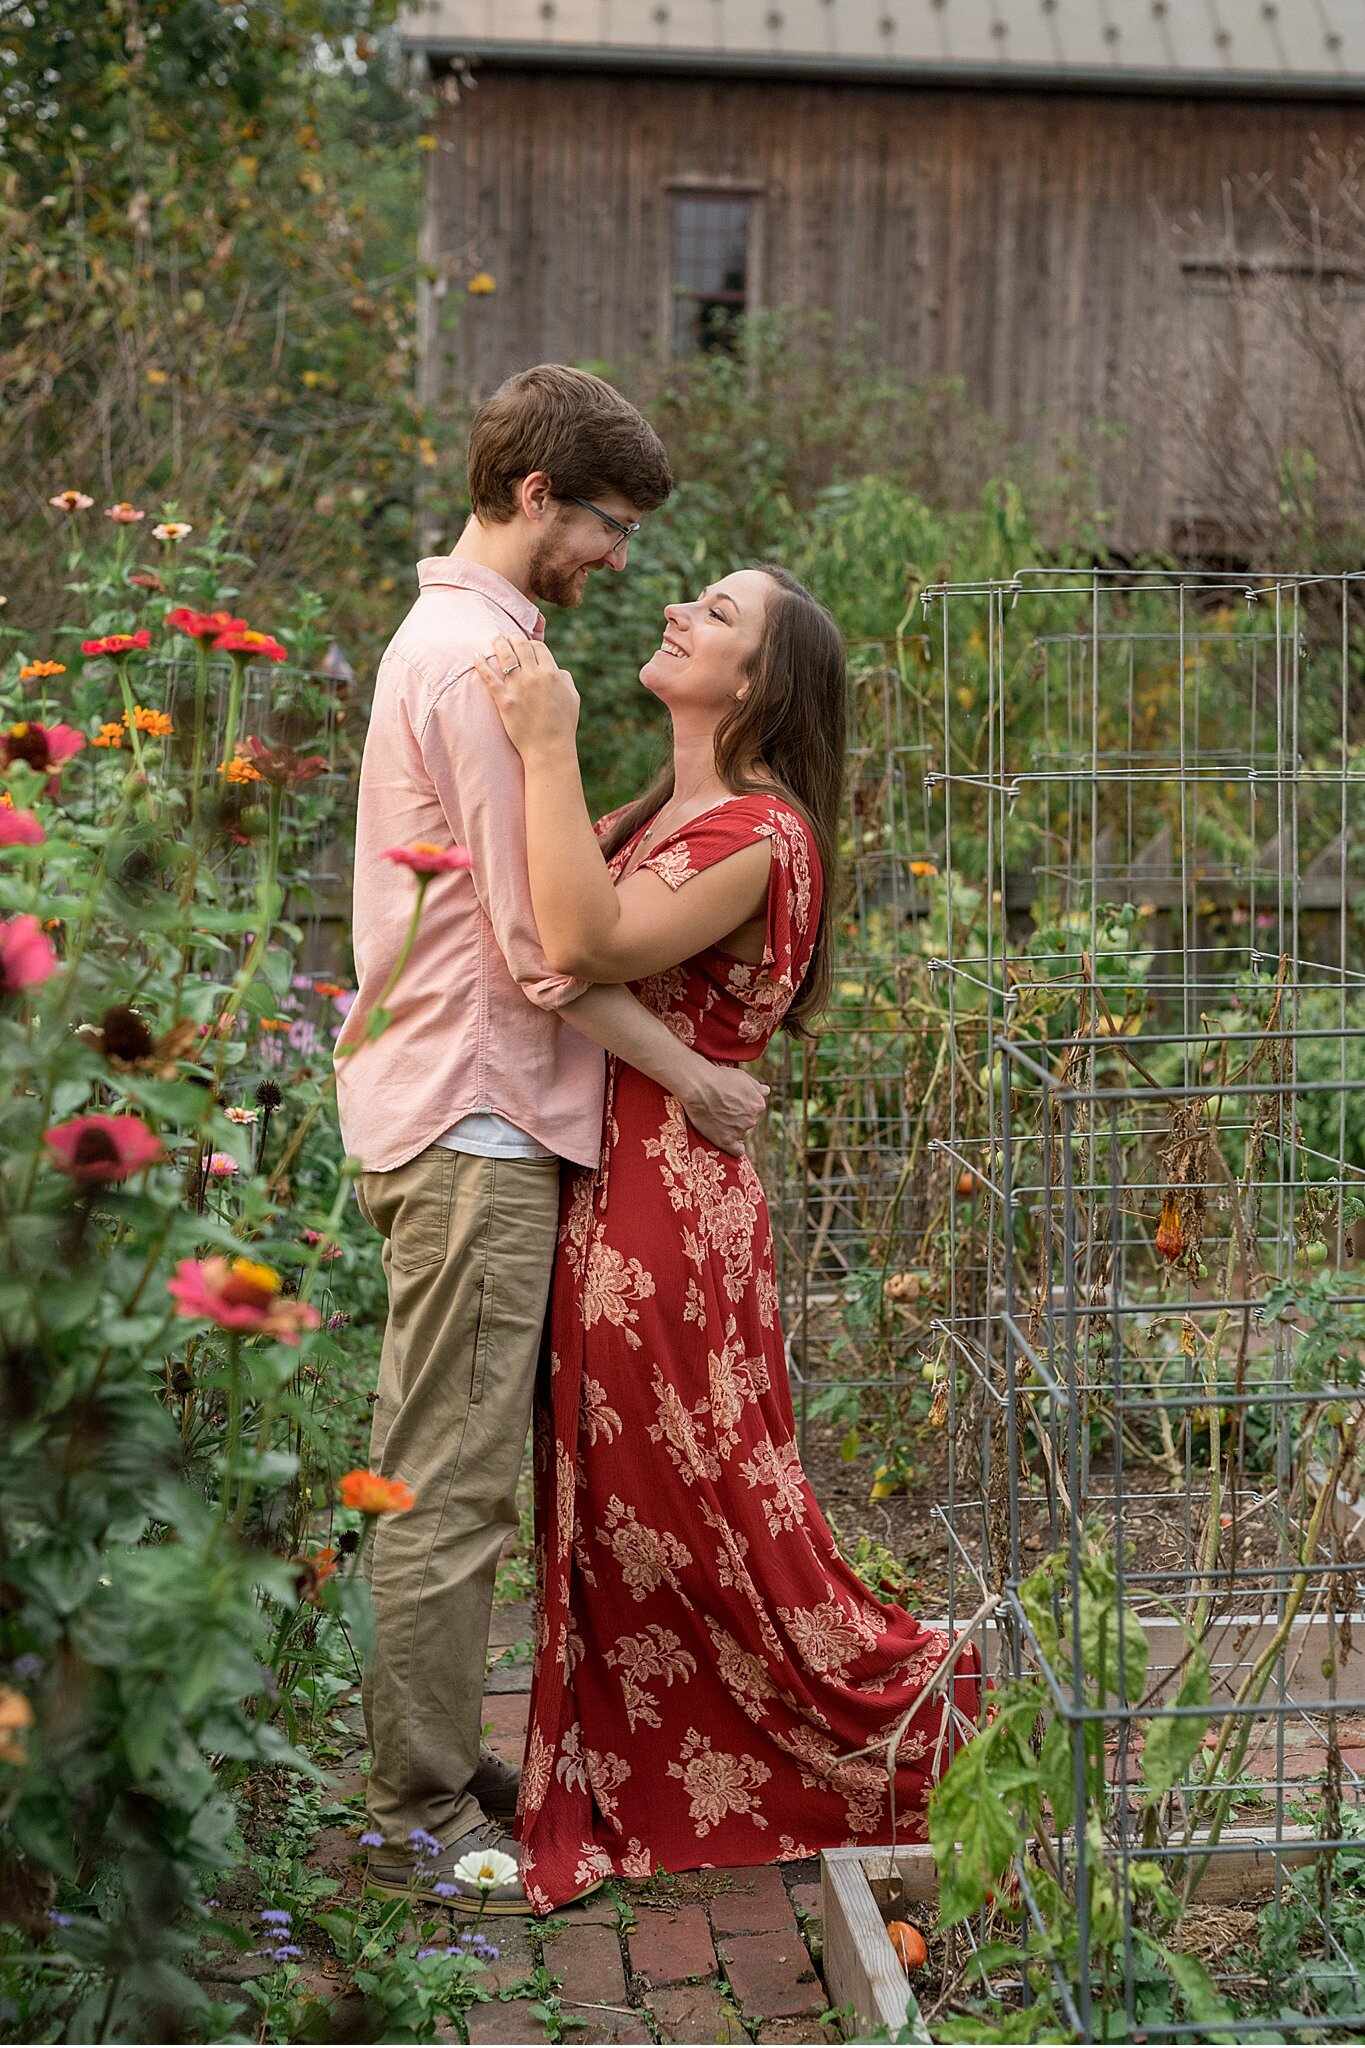 Lititz PA engagement photography floral photography